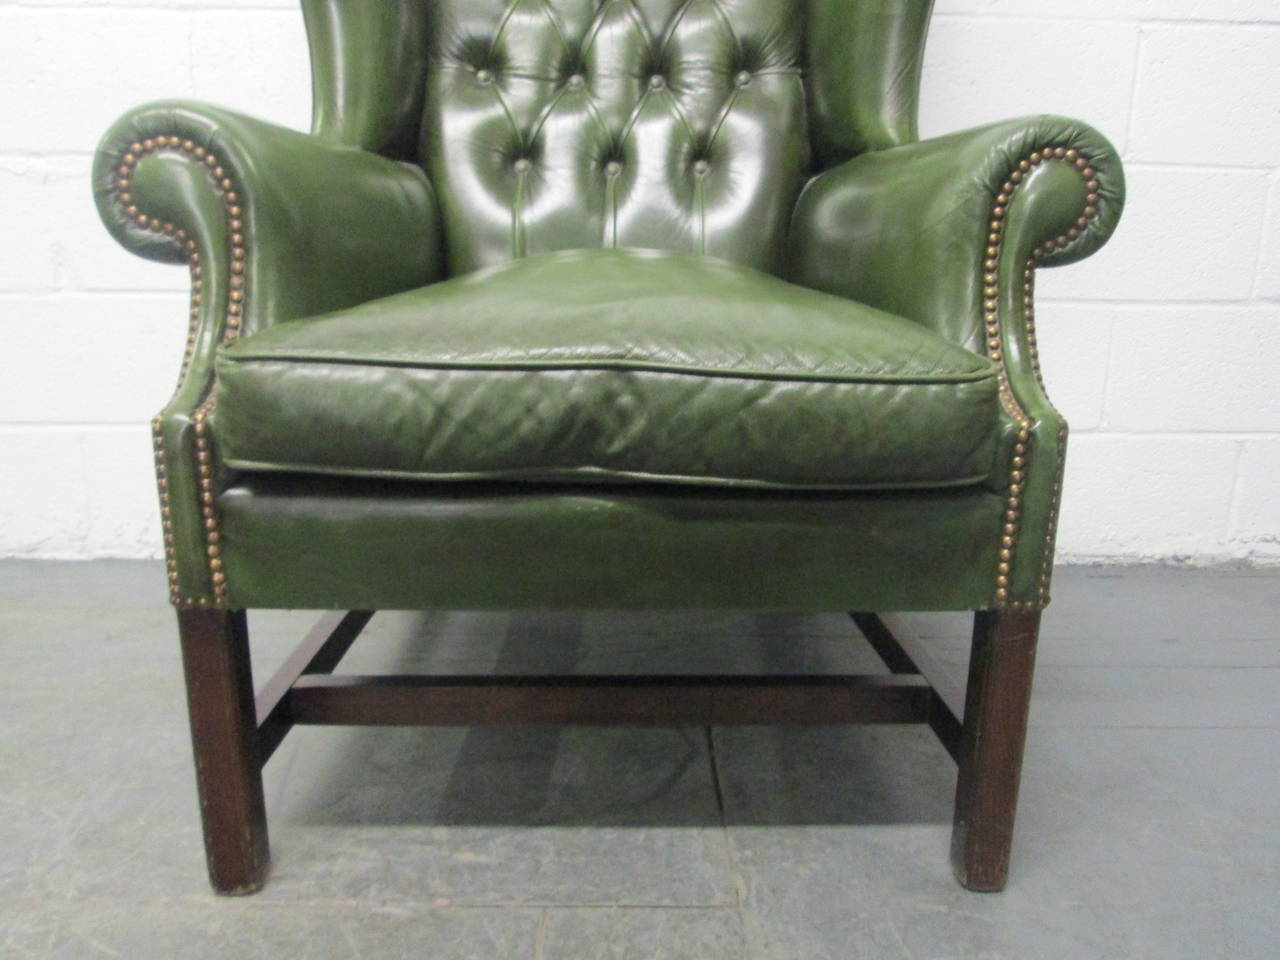 Mid 20th Century Vintage Green Leather Tufted Wingback Chair For Sale